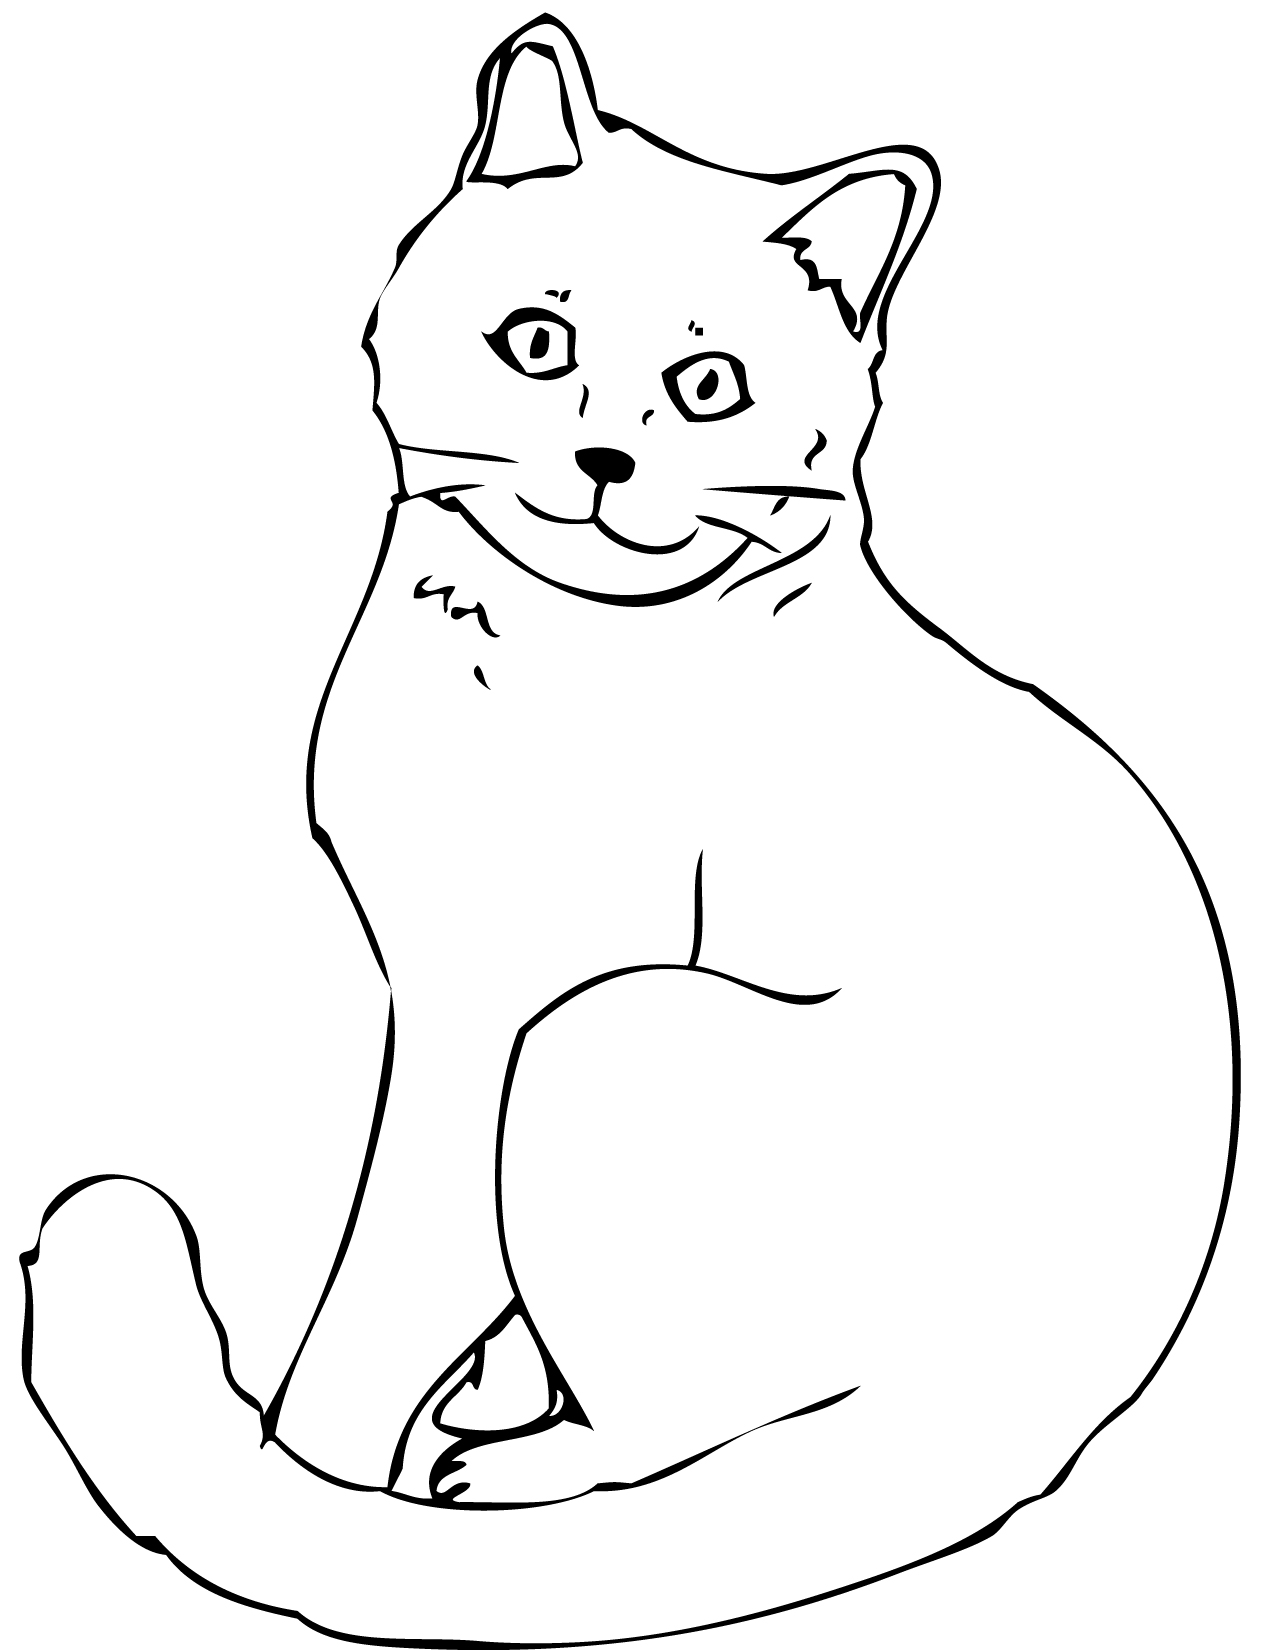 coloring worksheets cat cat coloring pages kidsuki cat coloring worksheets